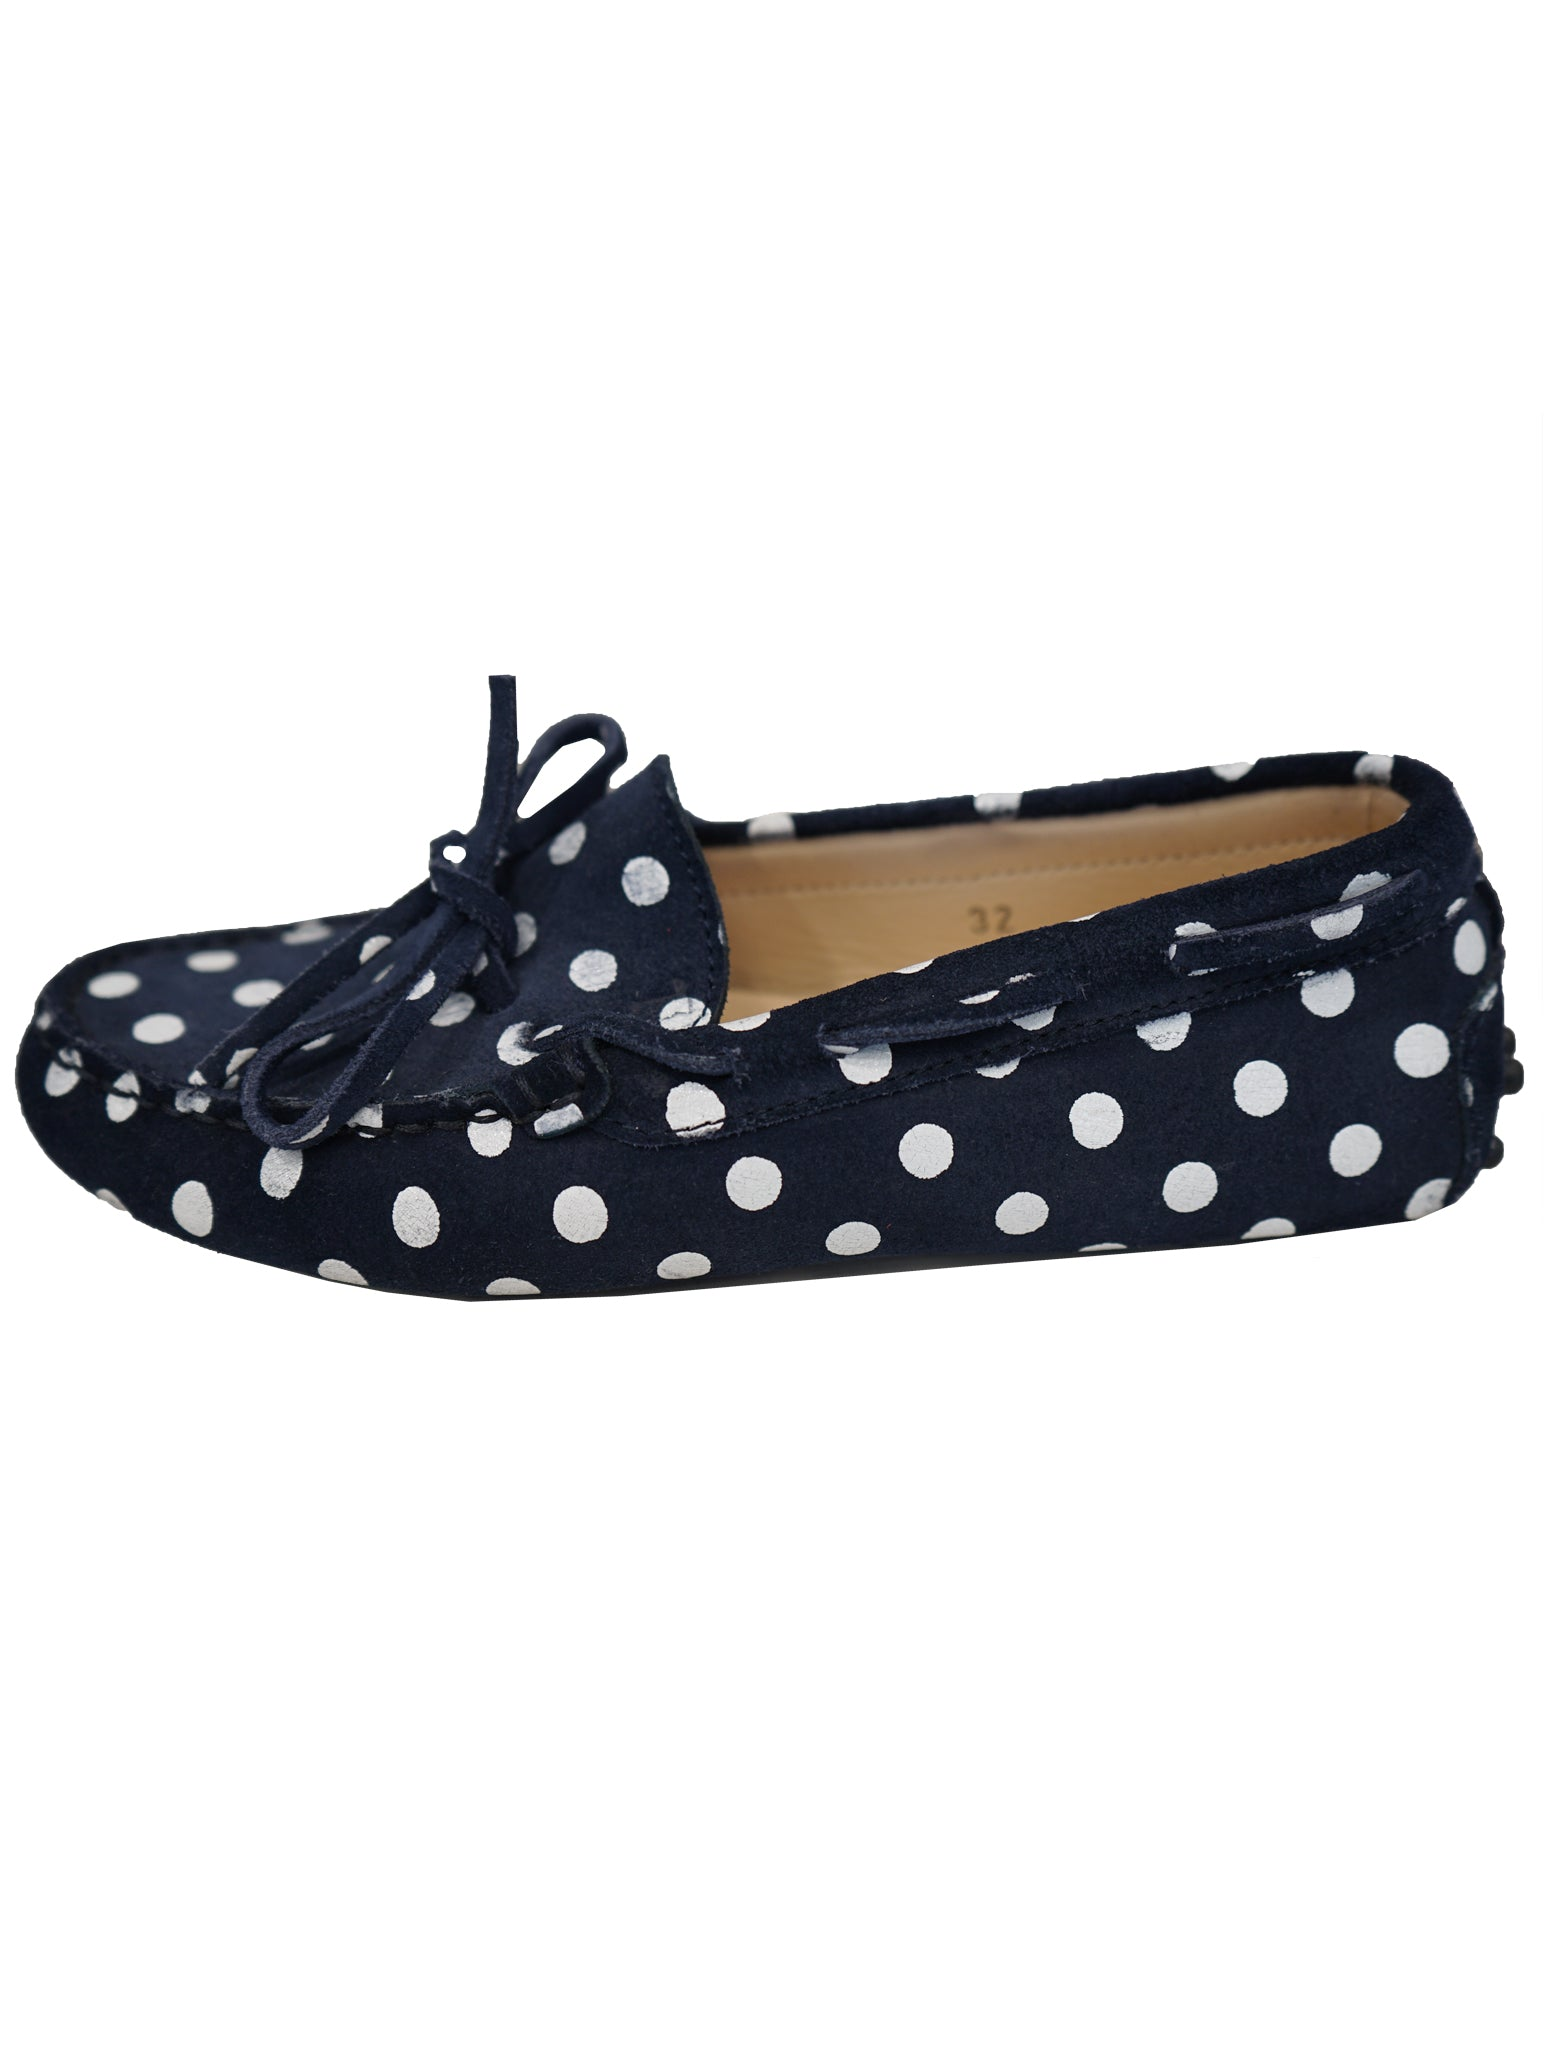 SUEDE POLKA DOT LACEUP DRIVERS